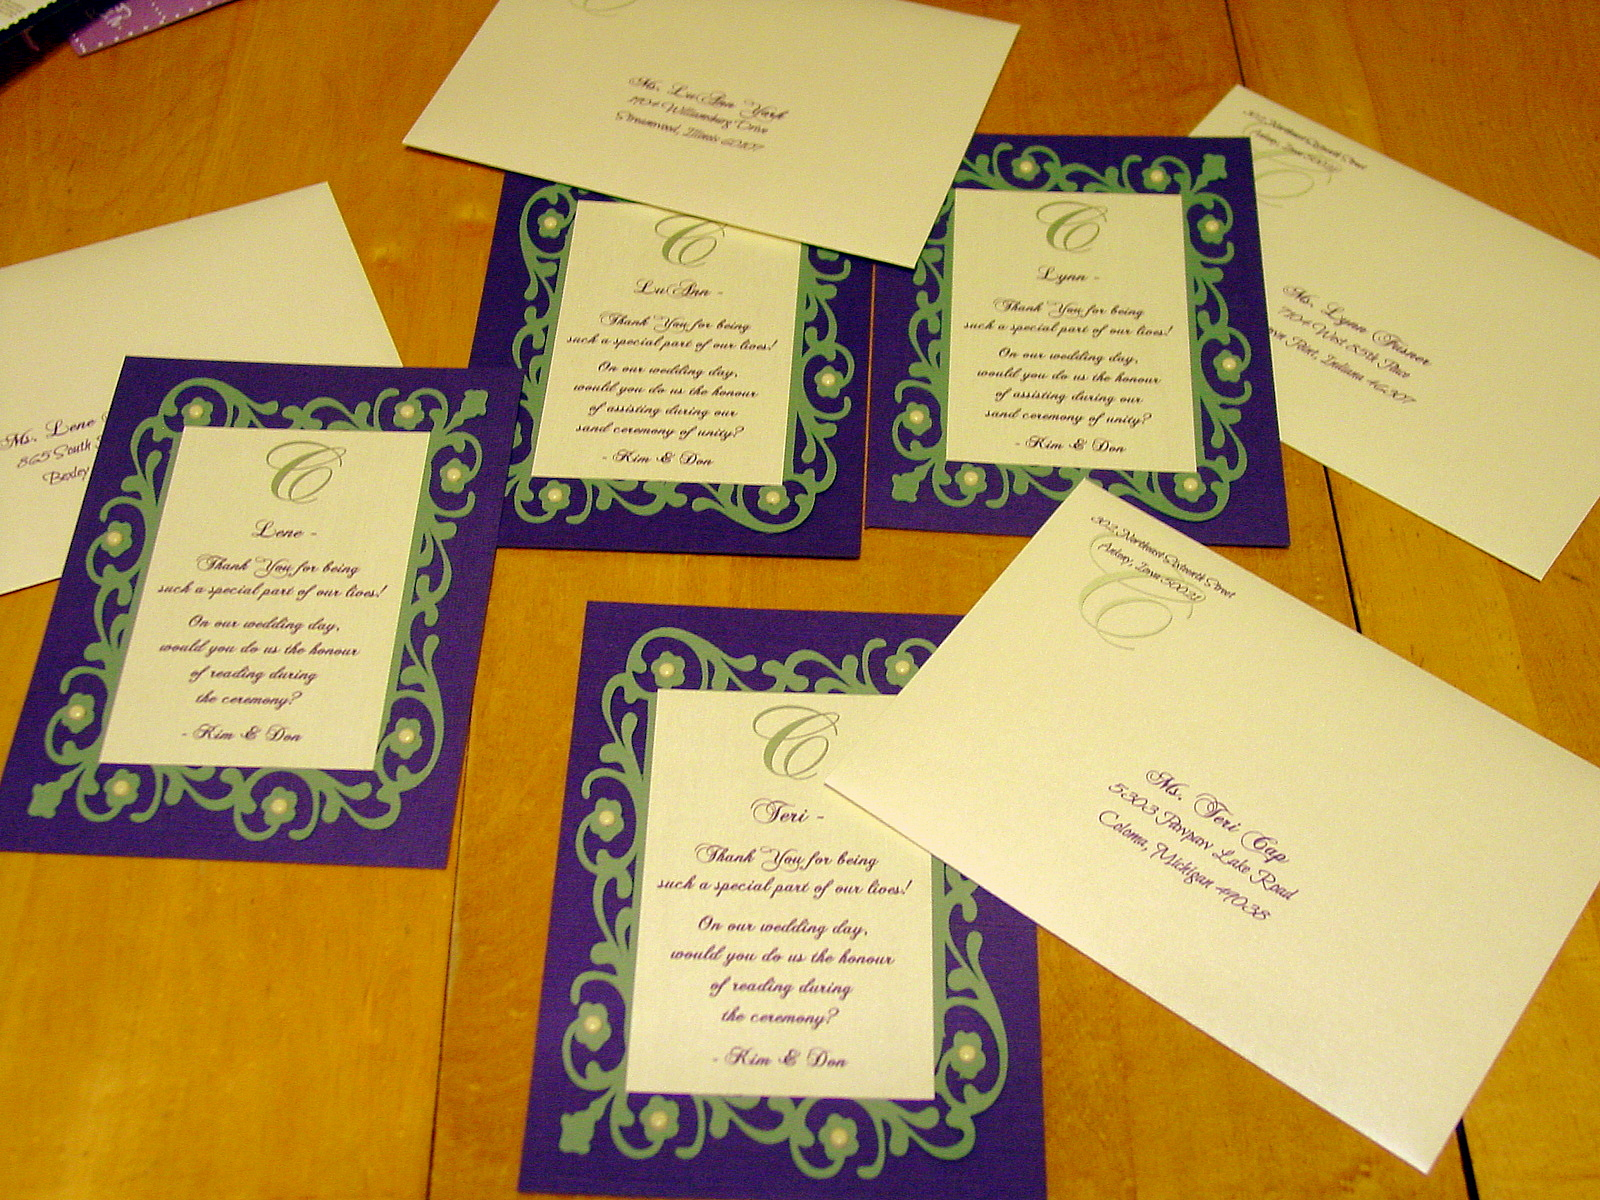 Kim and Don - Wedding Party Invites